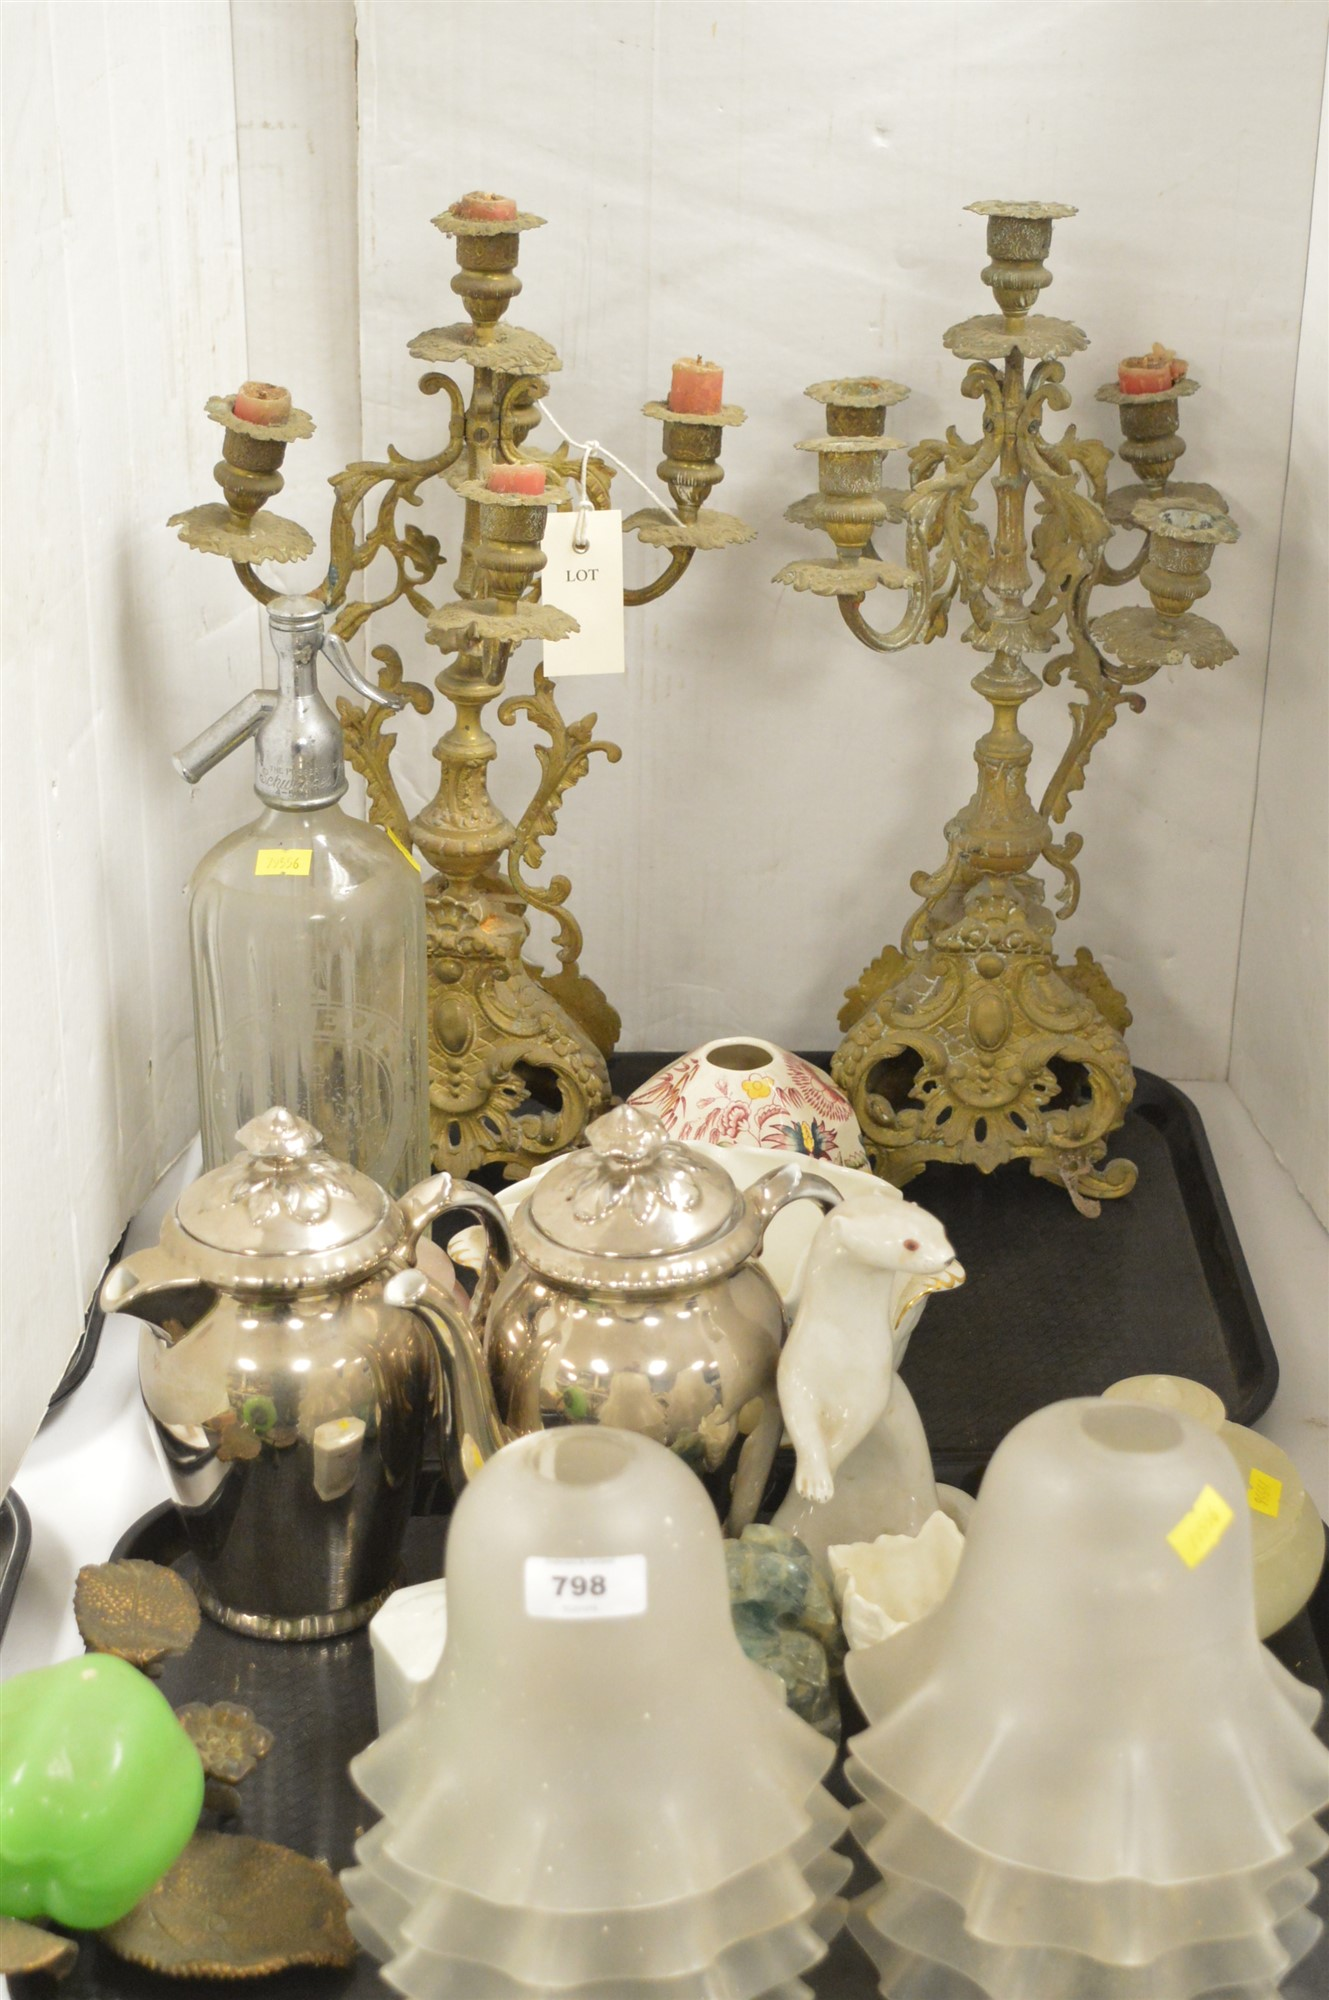 Lot 798 - Household items